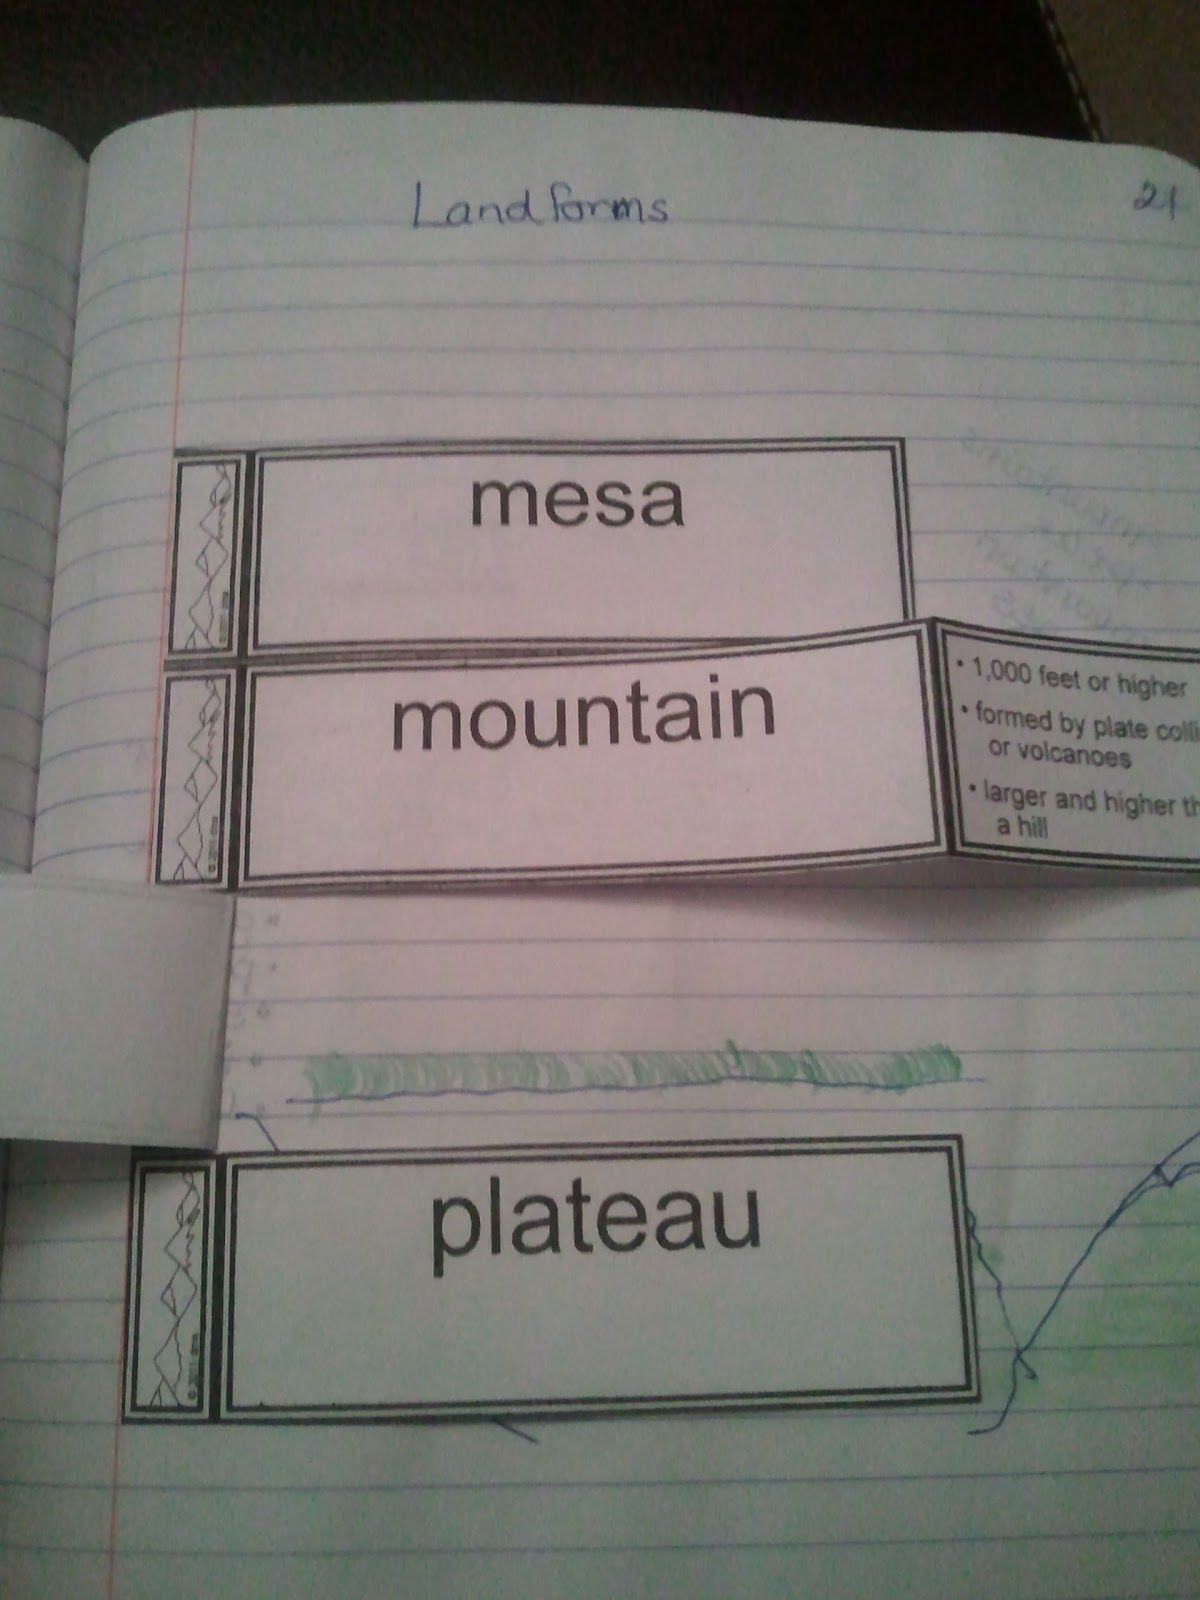 Types Of Landforms Foldable Have Class Add To Their